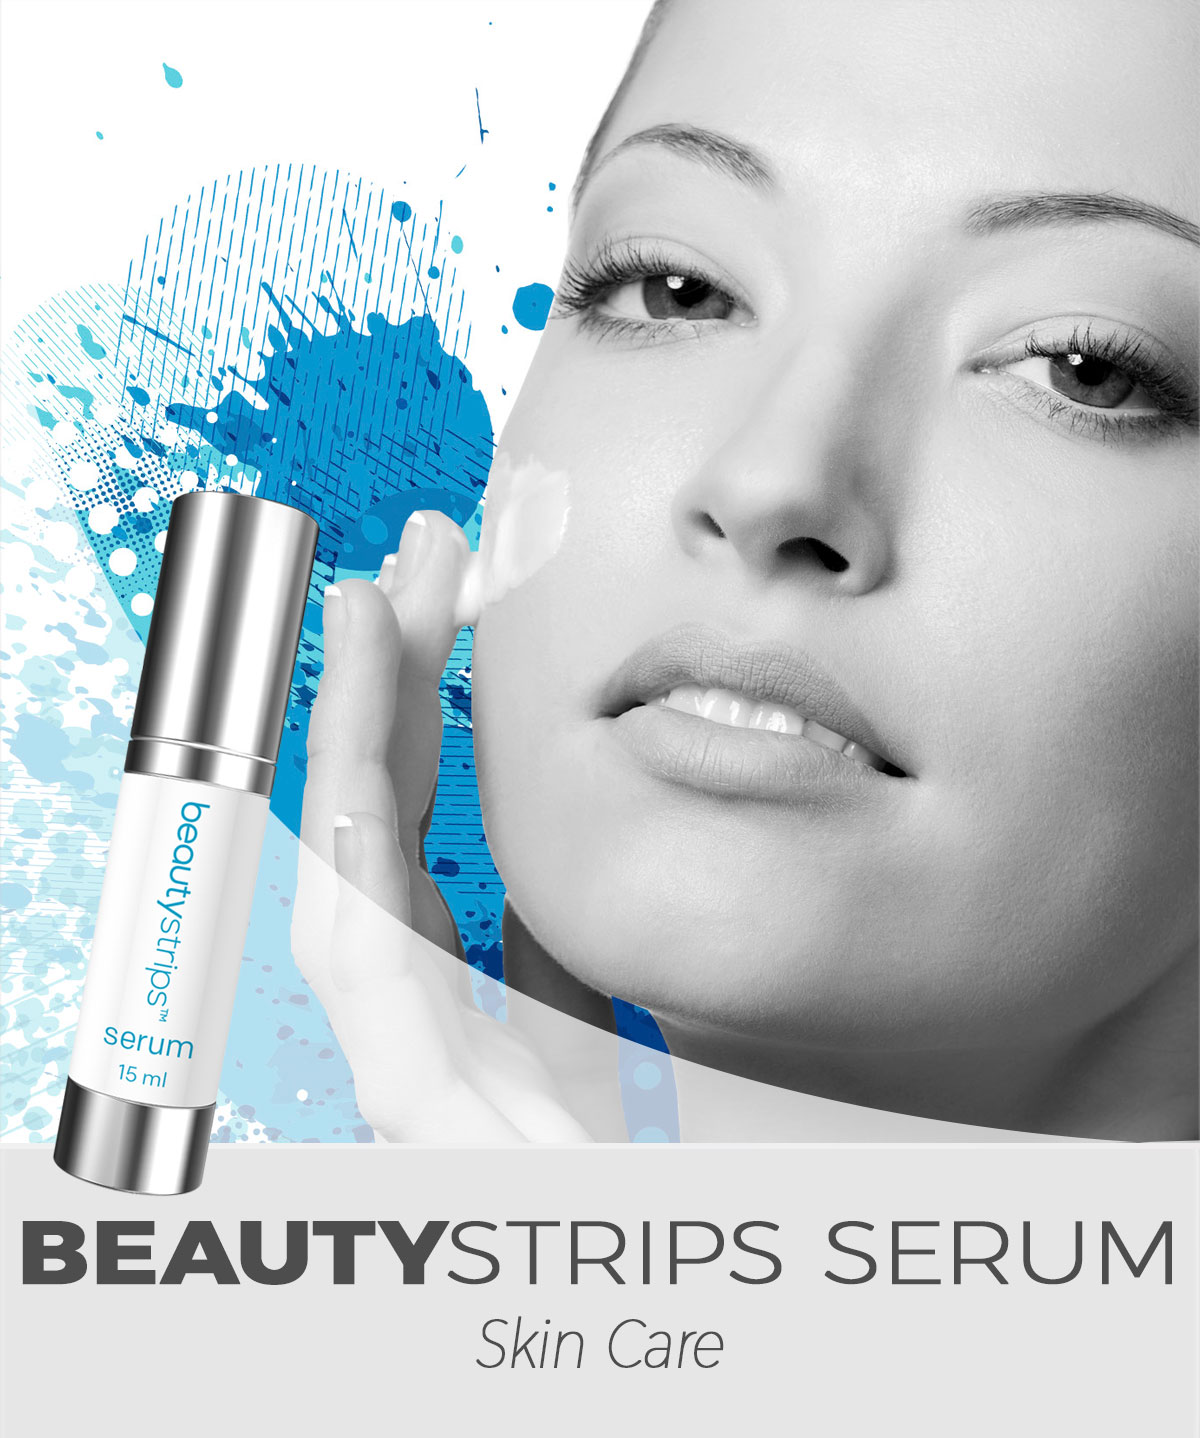 FGXpress BEAUTYSTRIPS SERUM